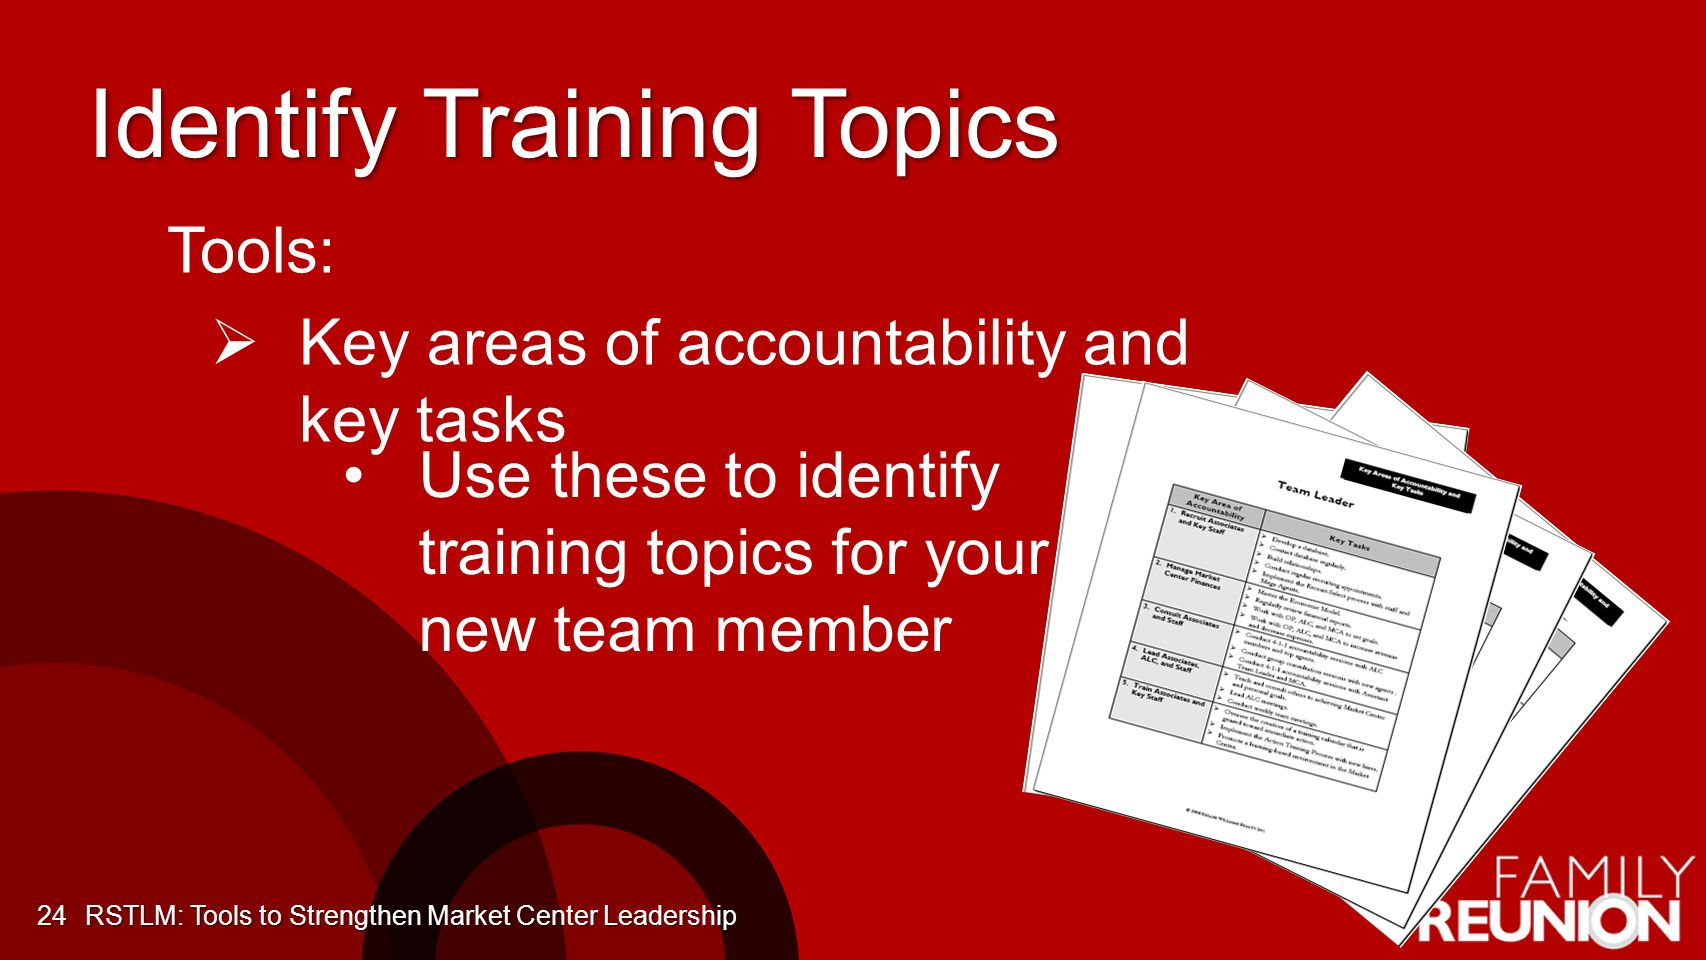 Identify Training Topics 24 Tools: Key areas of accountability and key tasks Use these to identify training topics for your new team member RSTLM: Tools to Strengthen Market Center Leadership